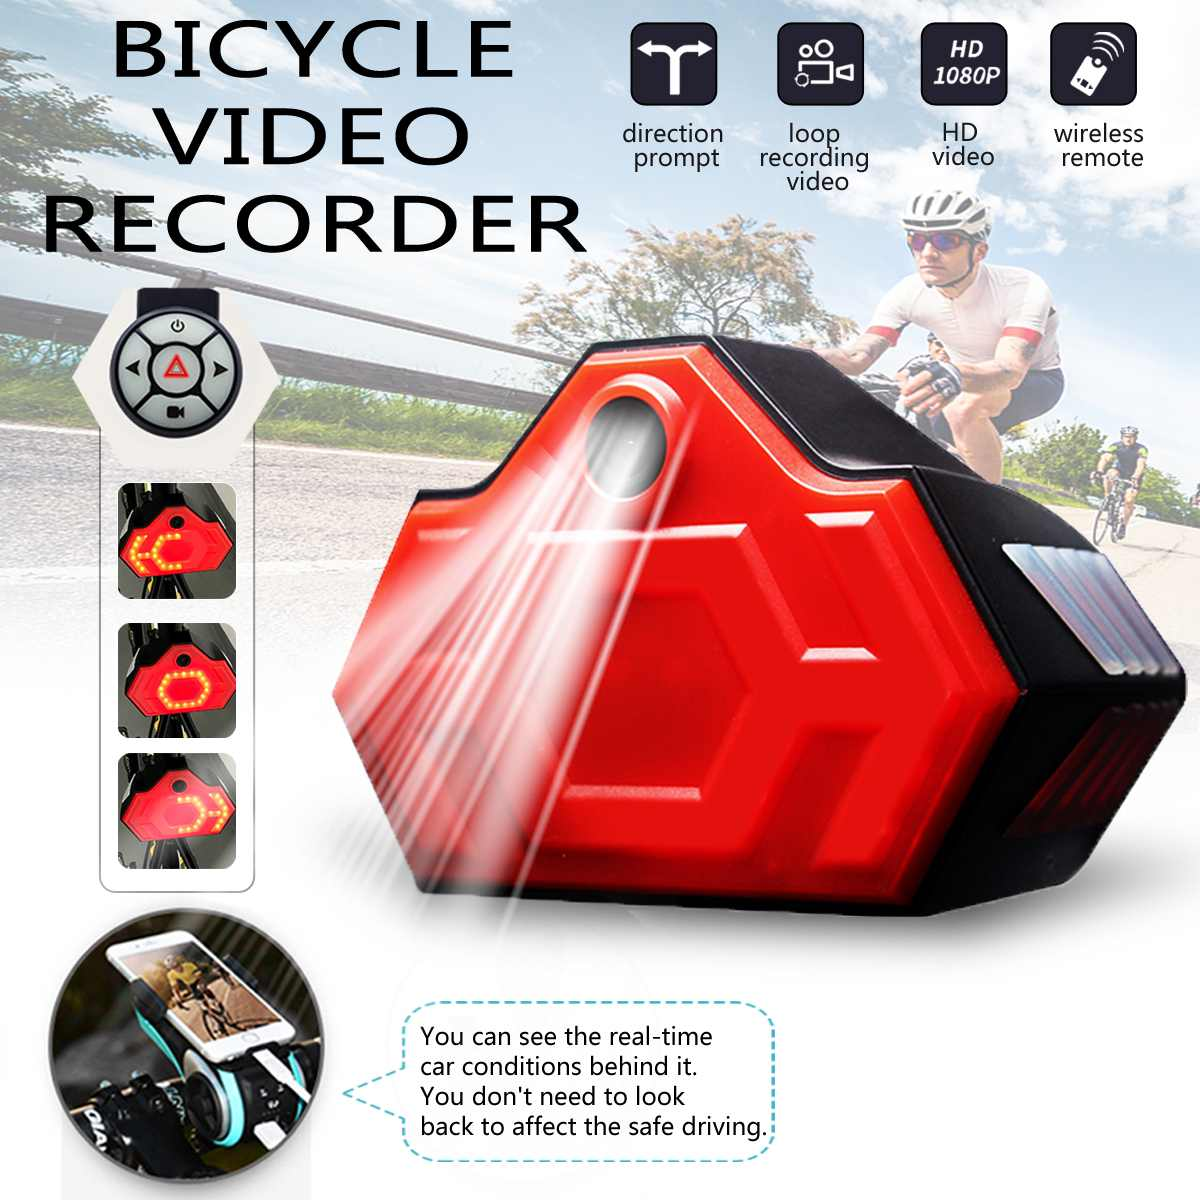 HD 1080P Bicycle Riding Driving Recorder Portable Bicycle Bike Sports Waterproof DVR Safety Warning Rear Light Bike AccessoriesHD 1080P Bicycle Riding Driving Recorder Portable Bicycle Bike Sports Waterproof DVR Safety Warning Rear Light Bike Accessories